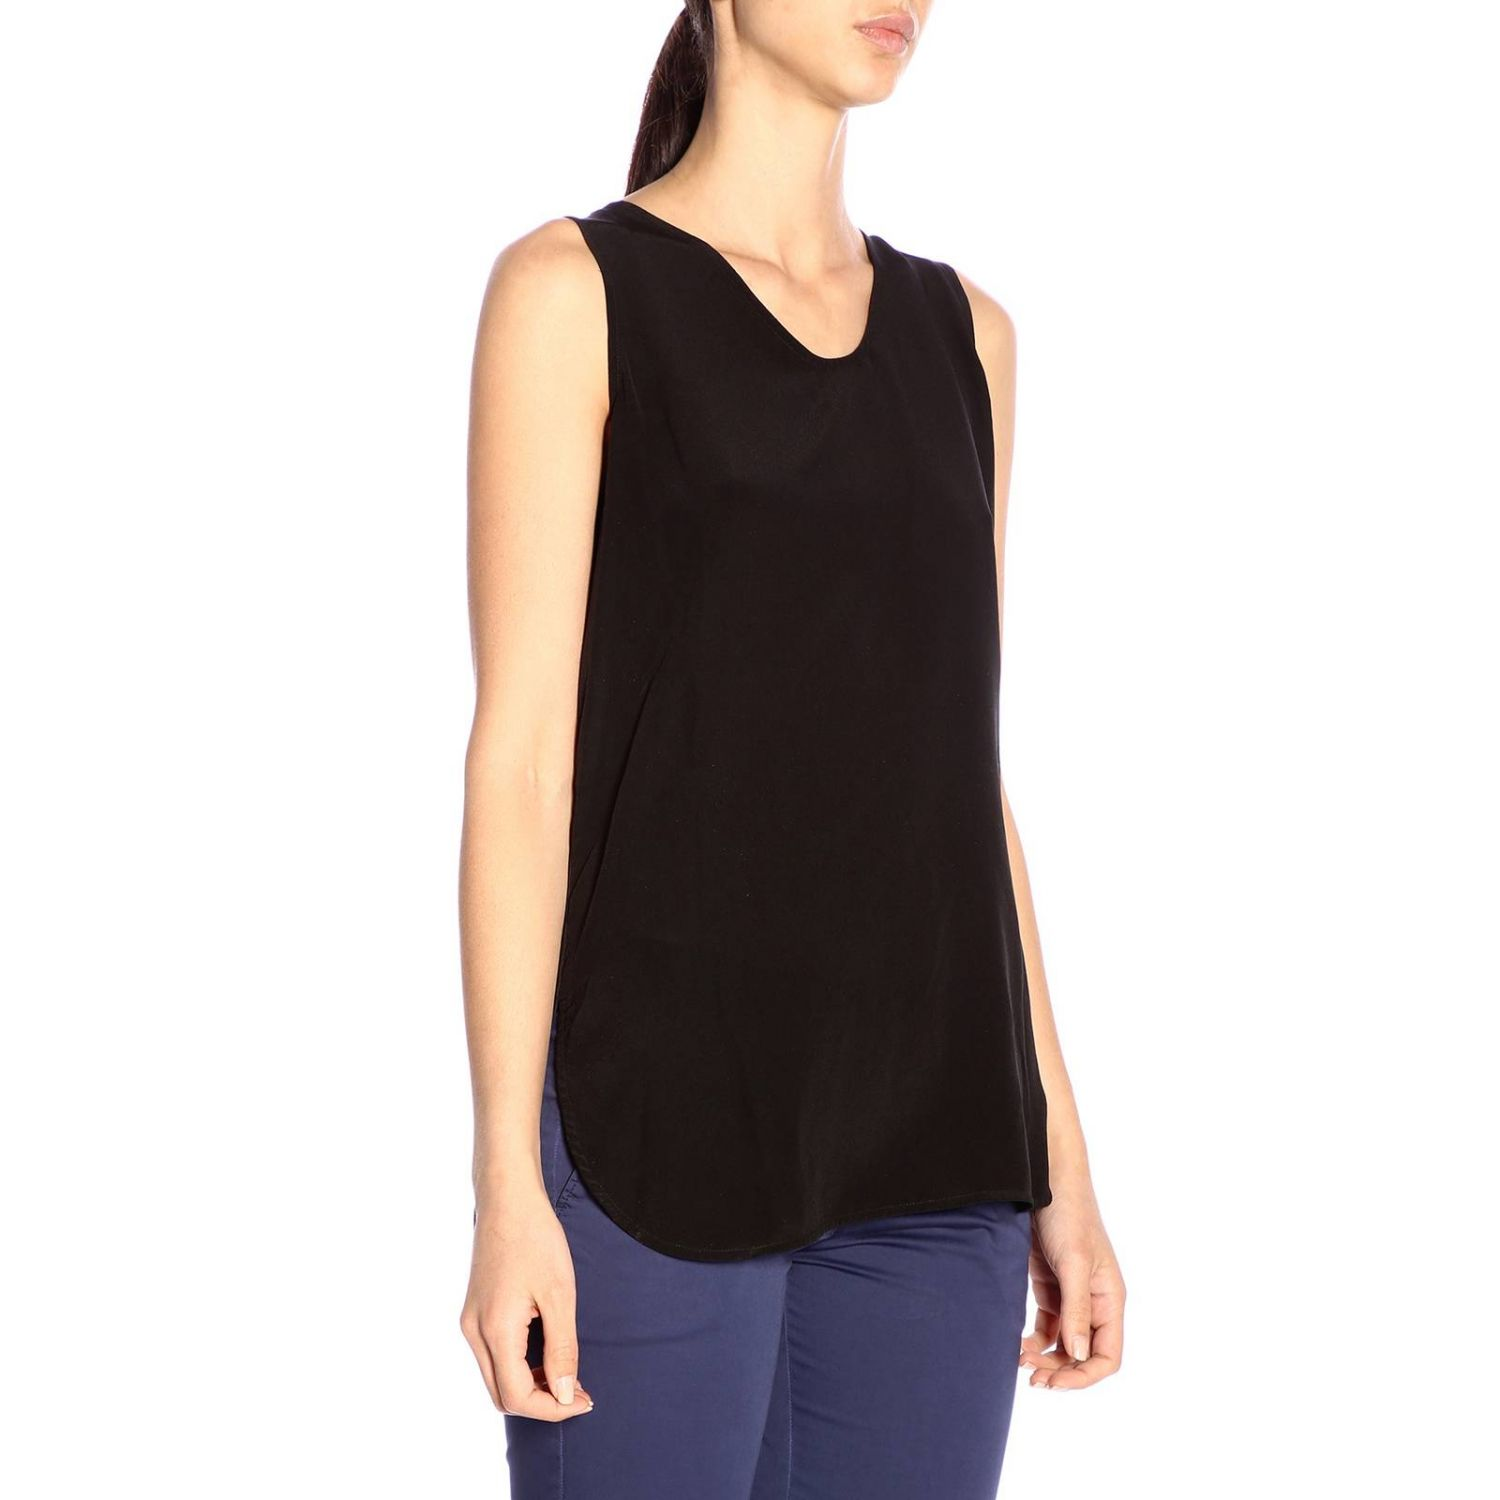 T-shirt women Woolrich black 2